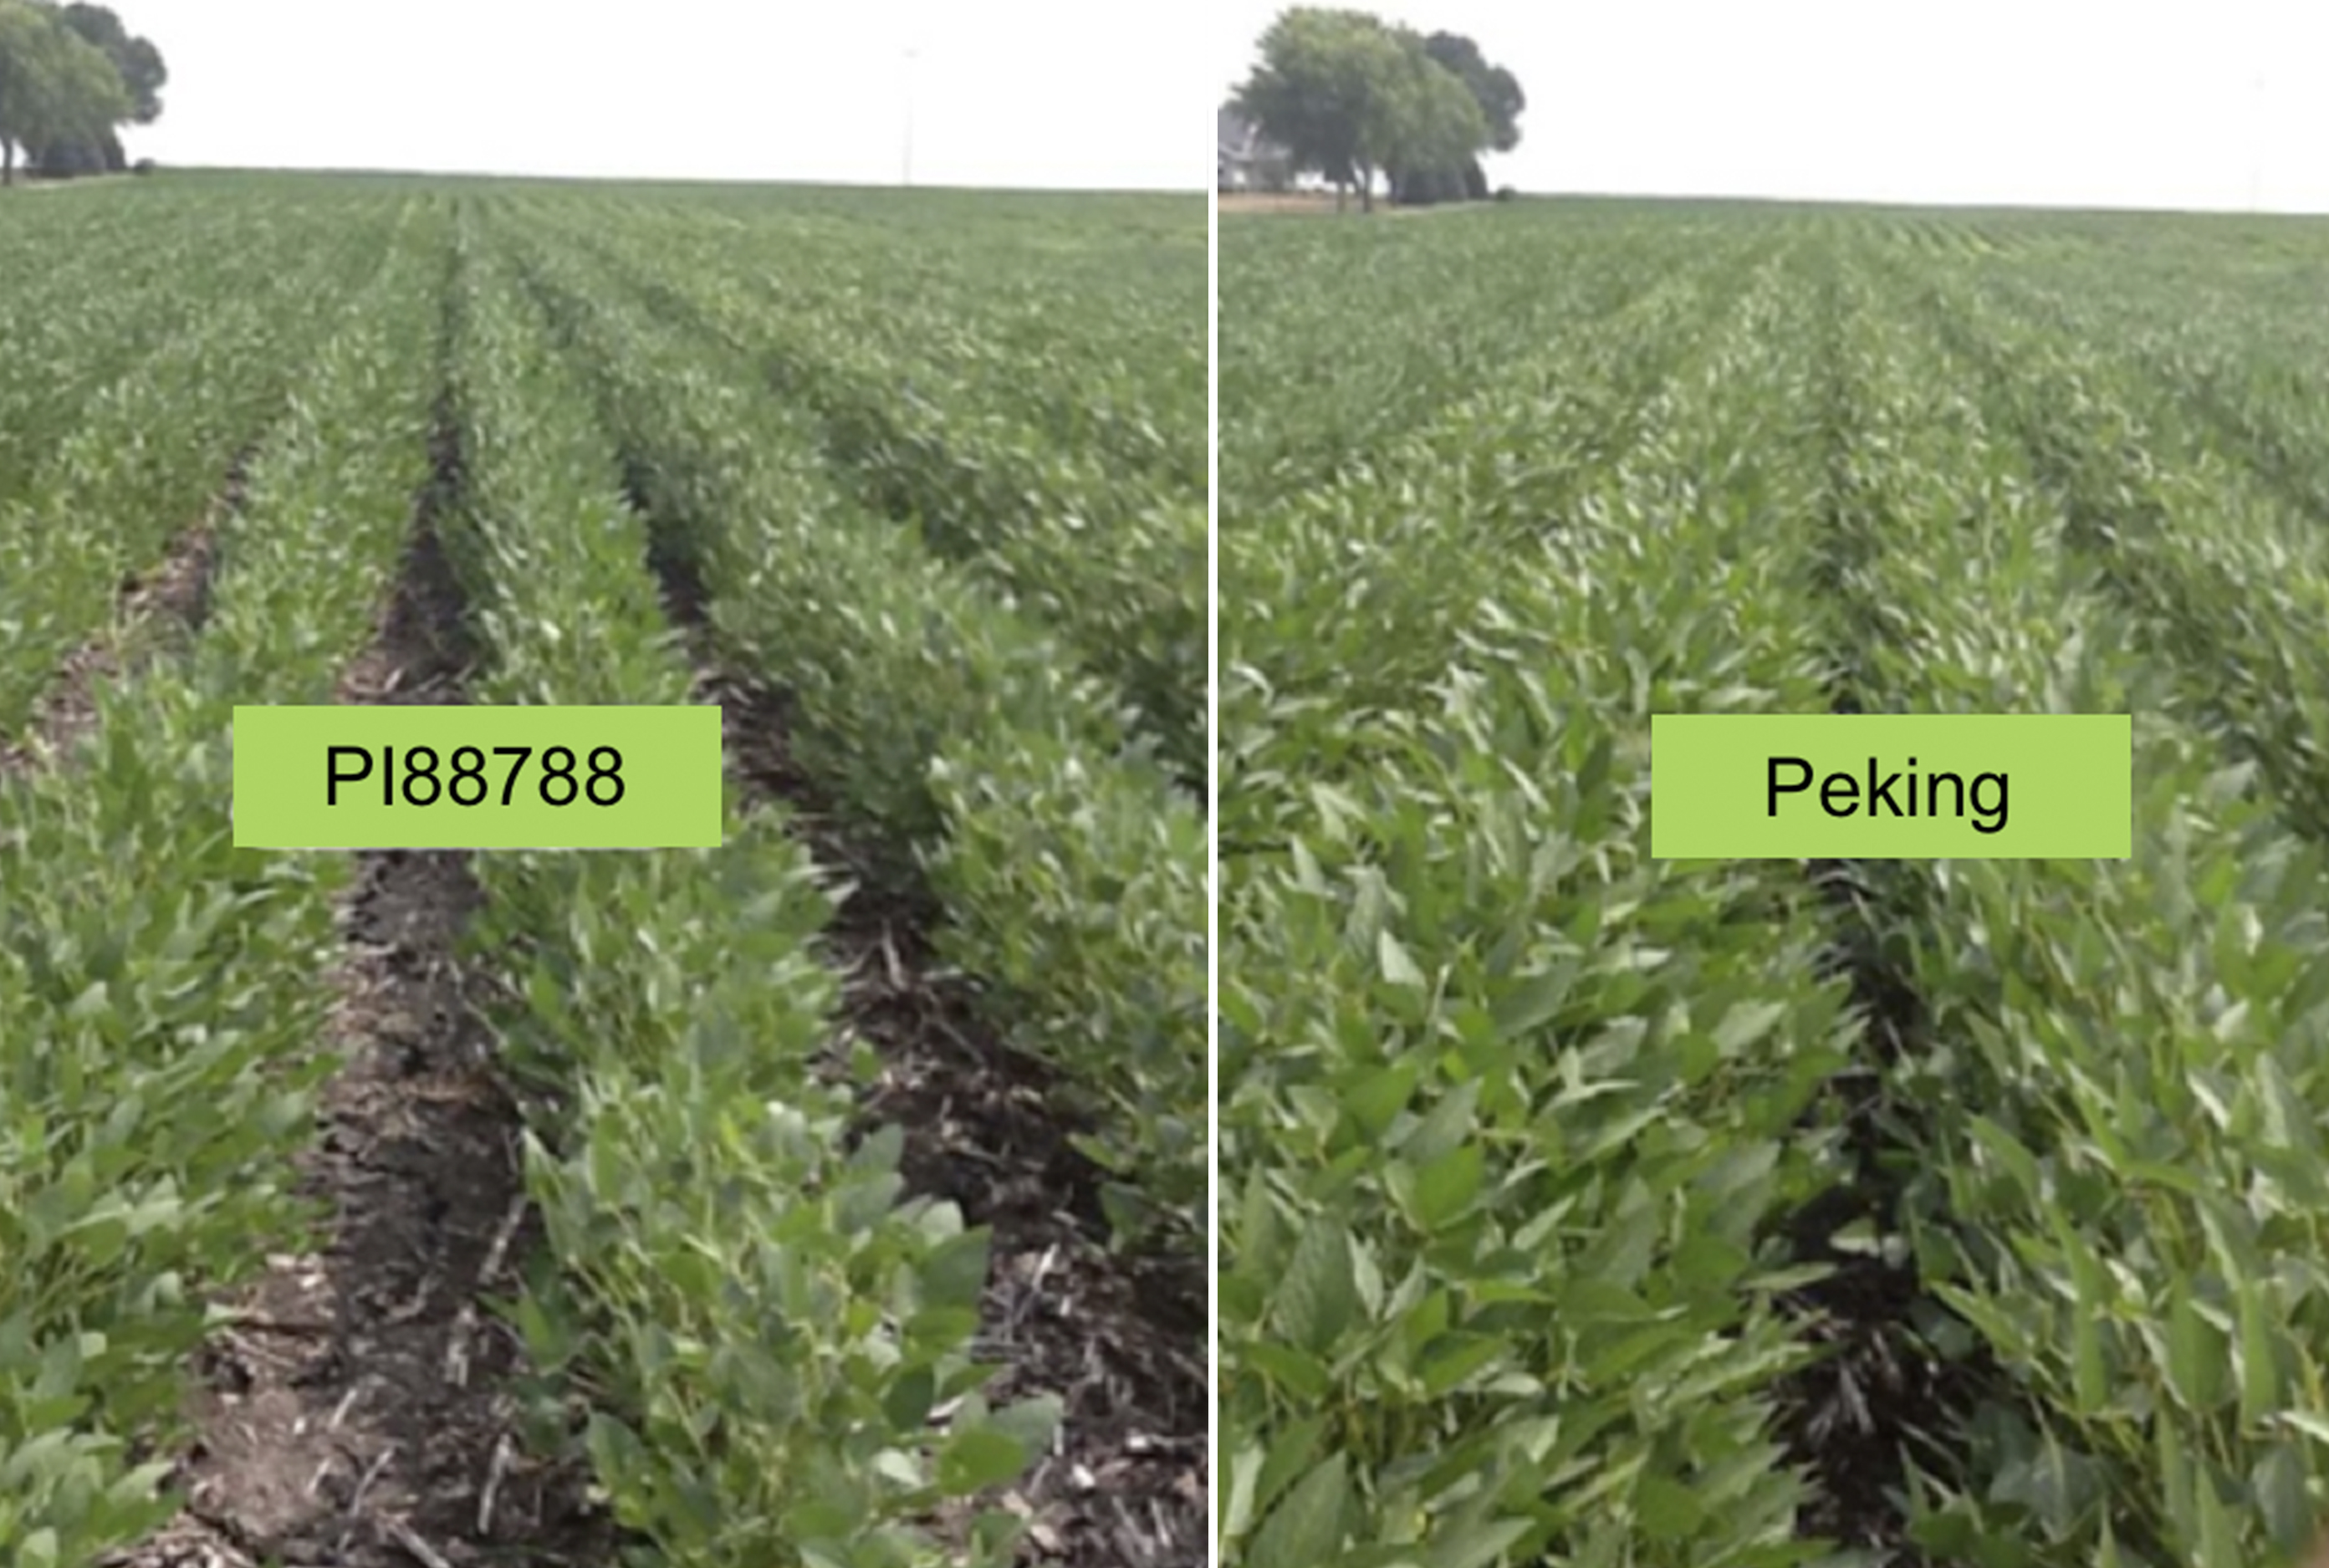 comparison image of PI88788 and Peking